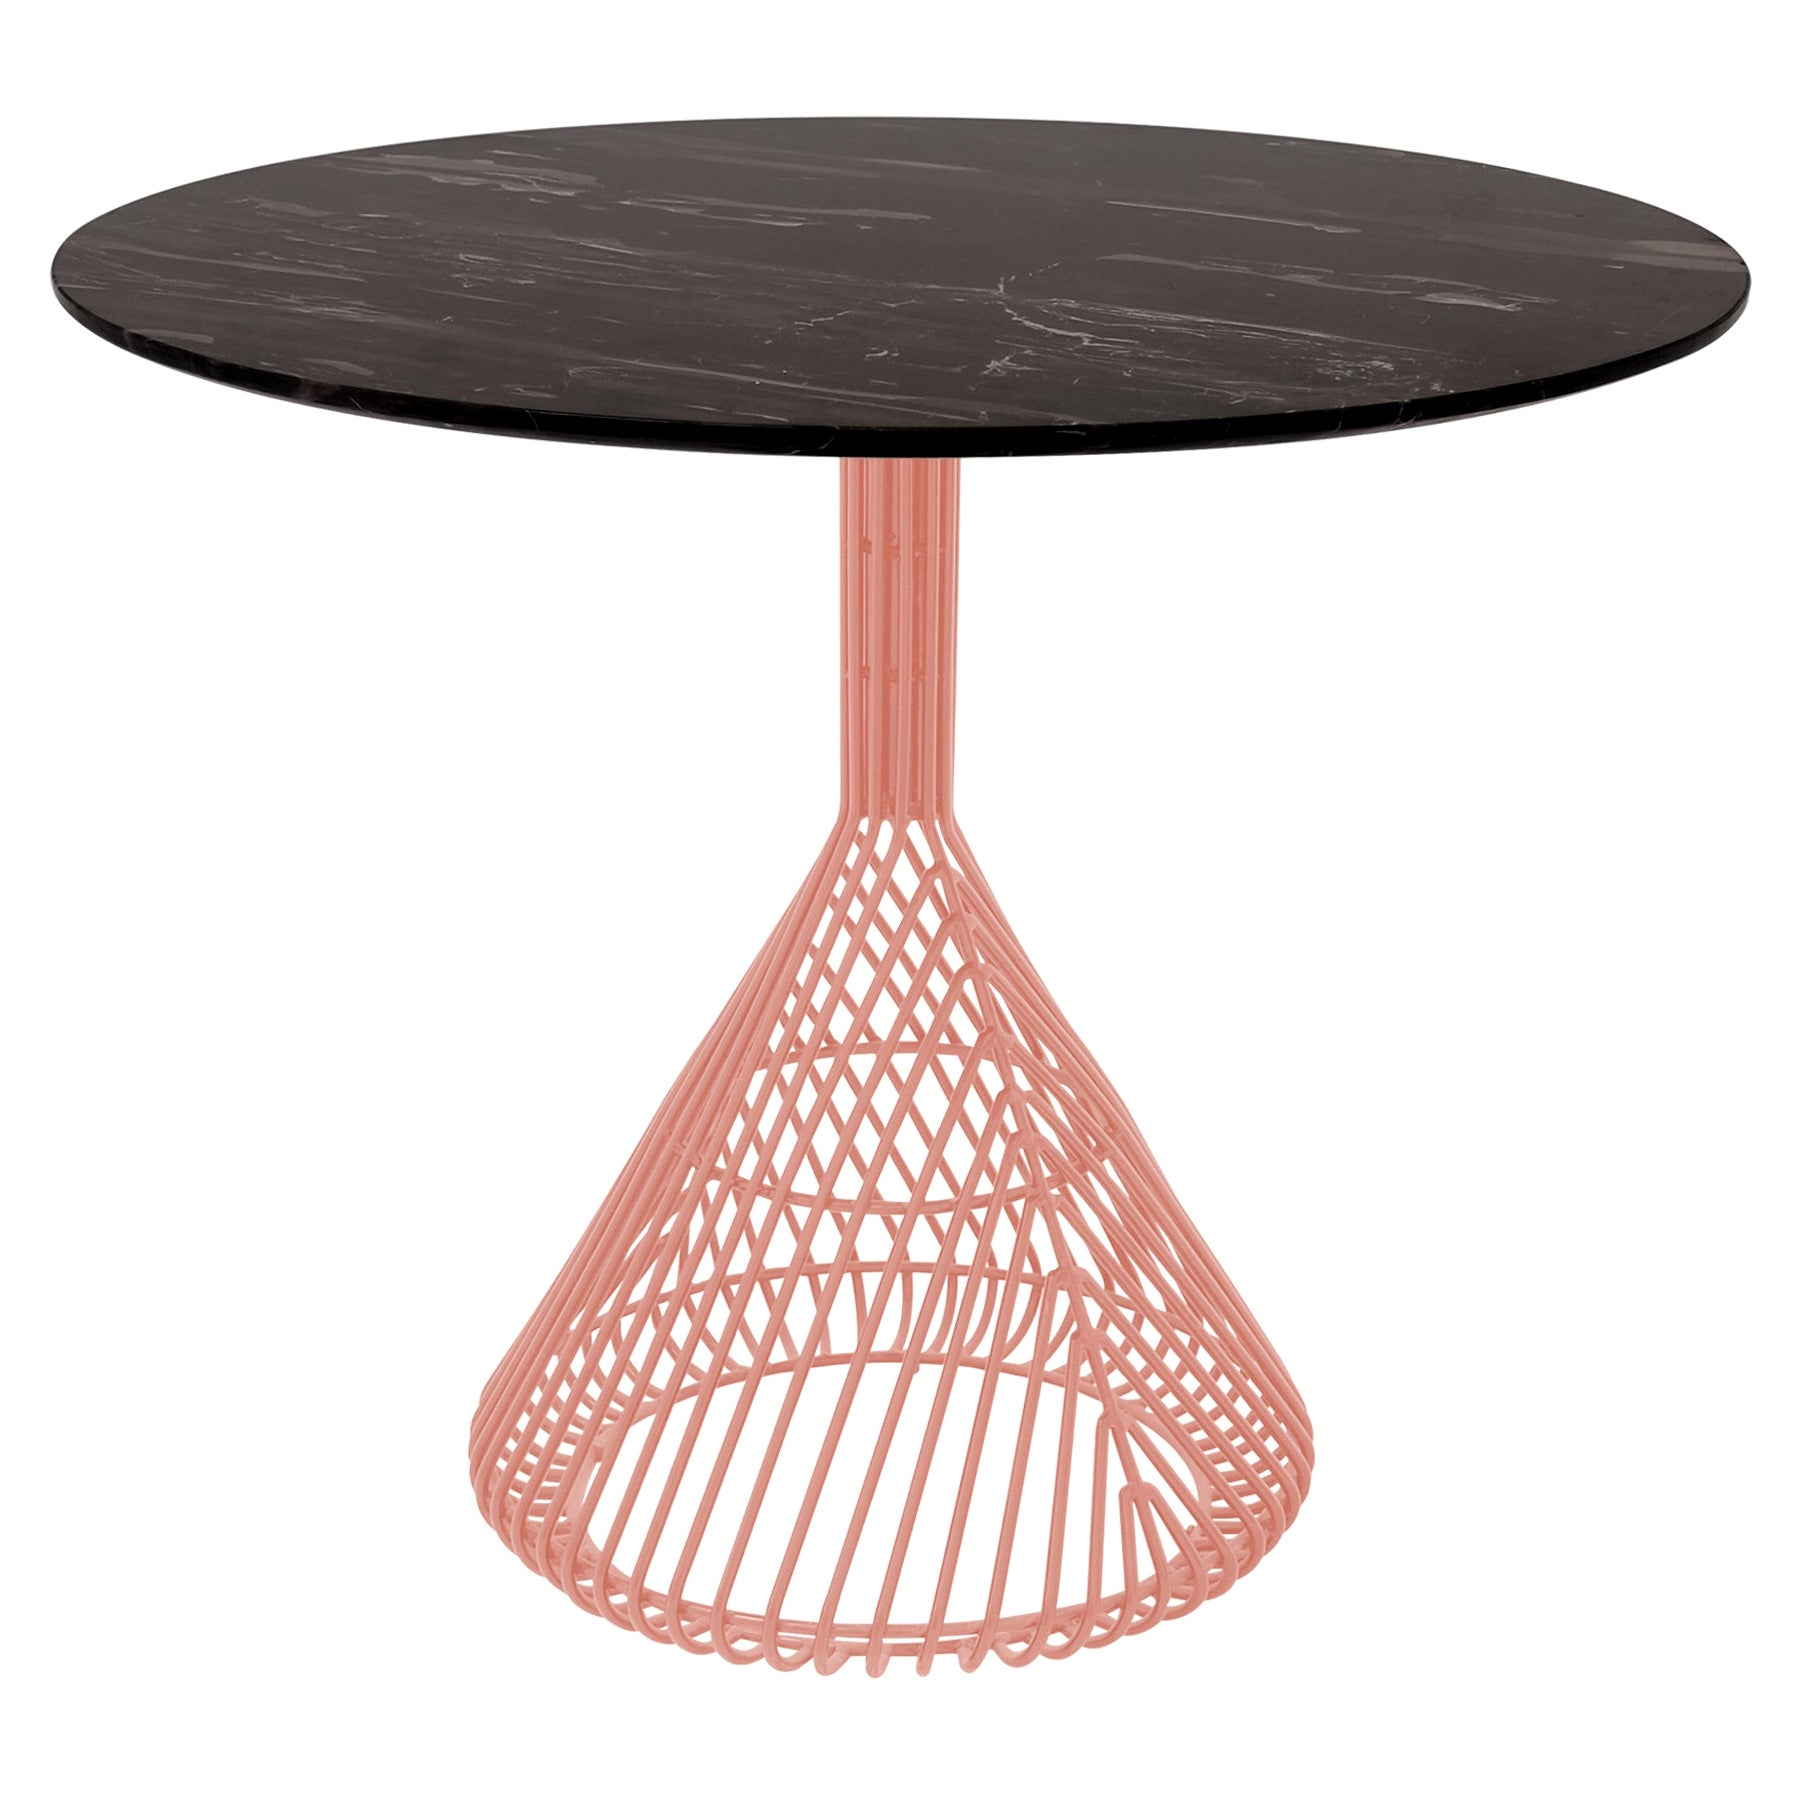 Modern Bistro Table, Wire Dining Table in Peachy Pink with Black Marble Top